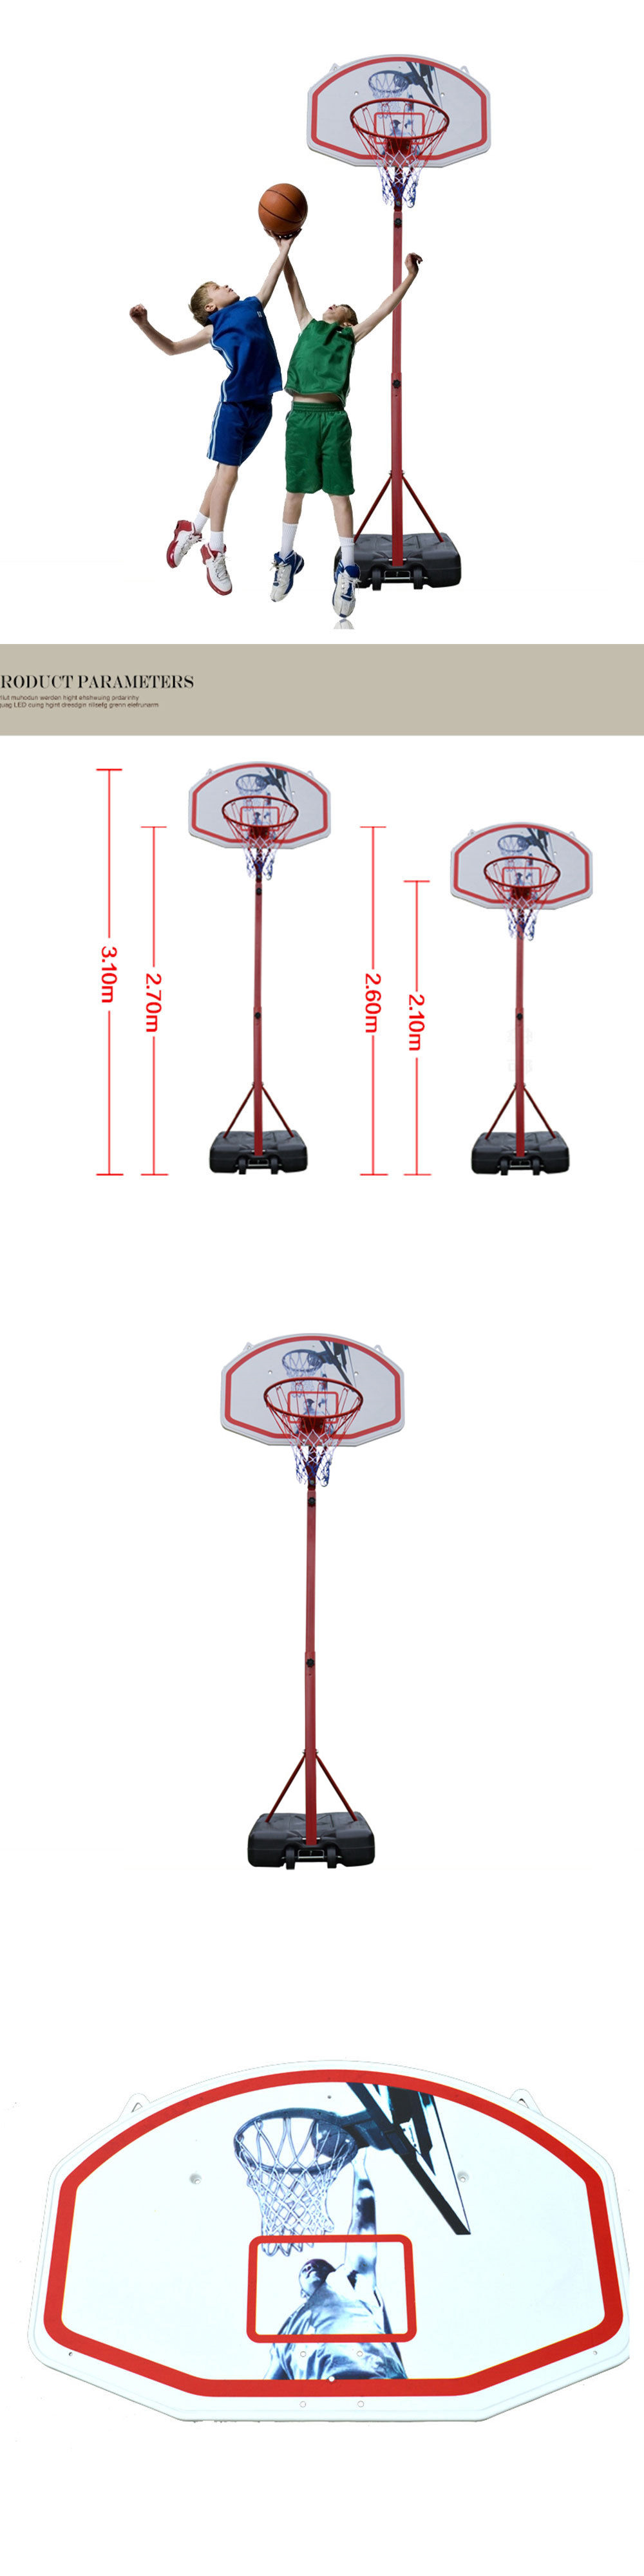 backboard systems 21196 indoor outdoor sports children kids youth